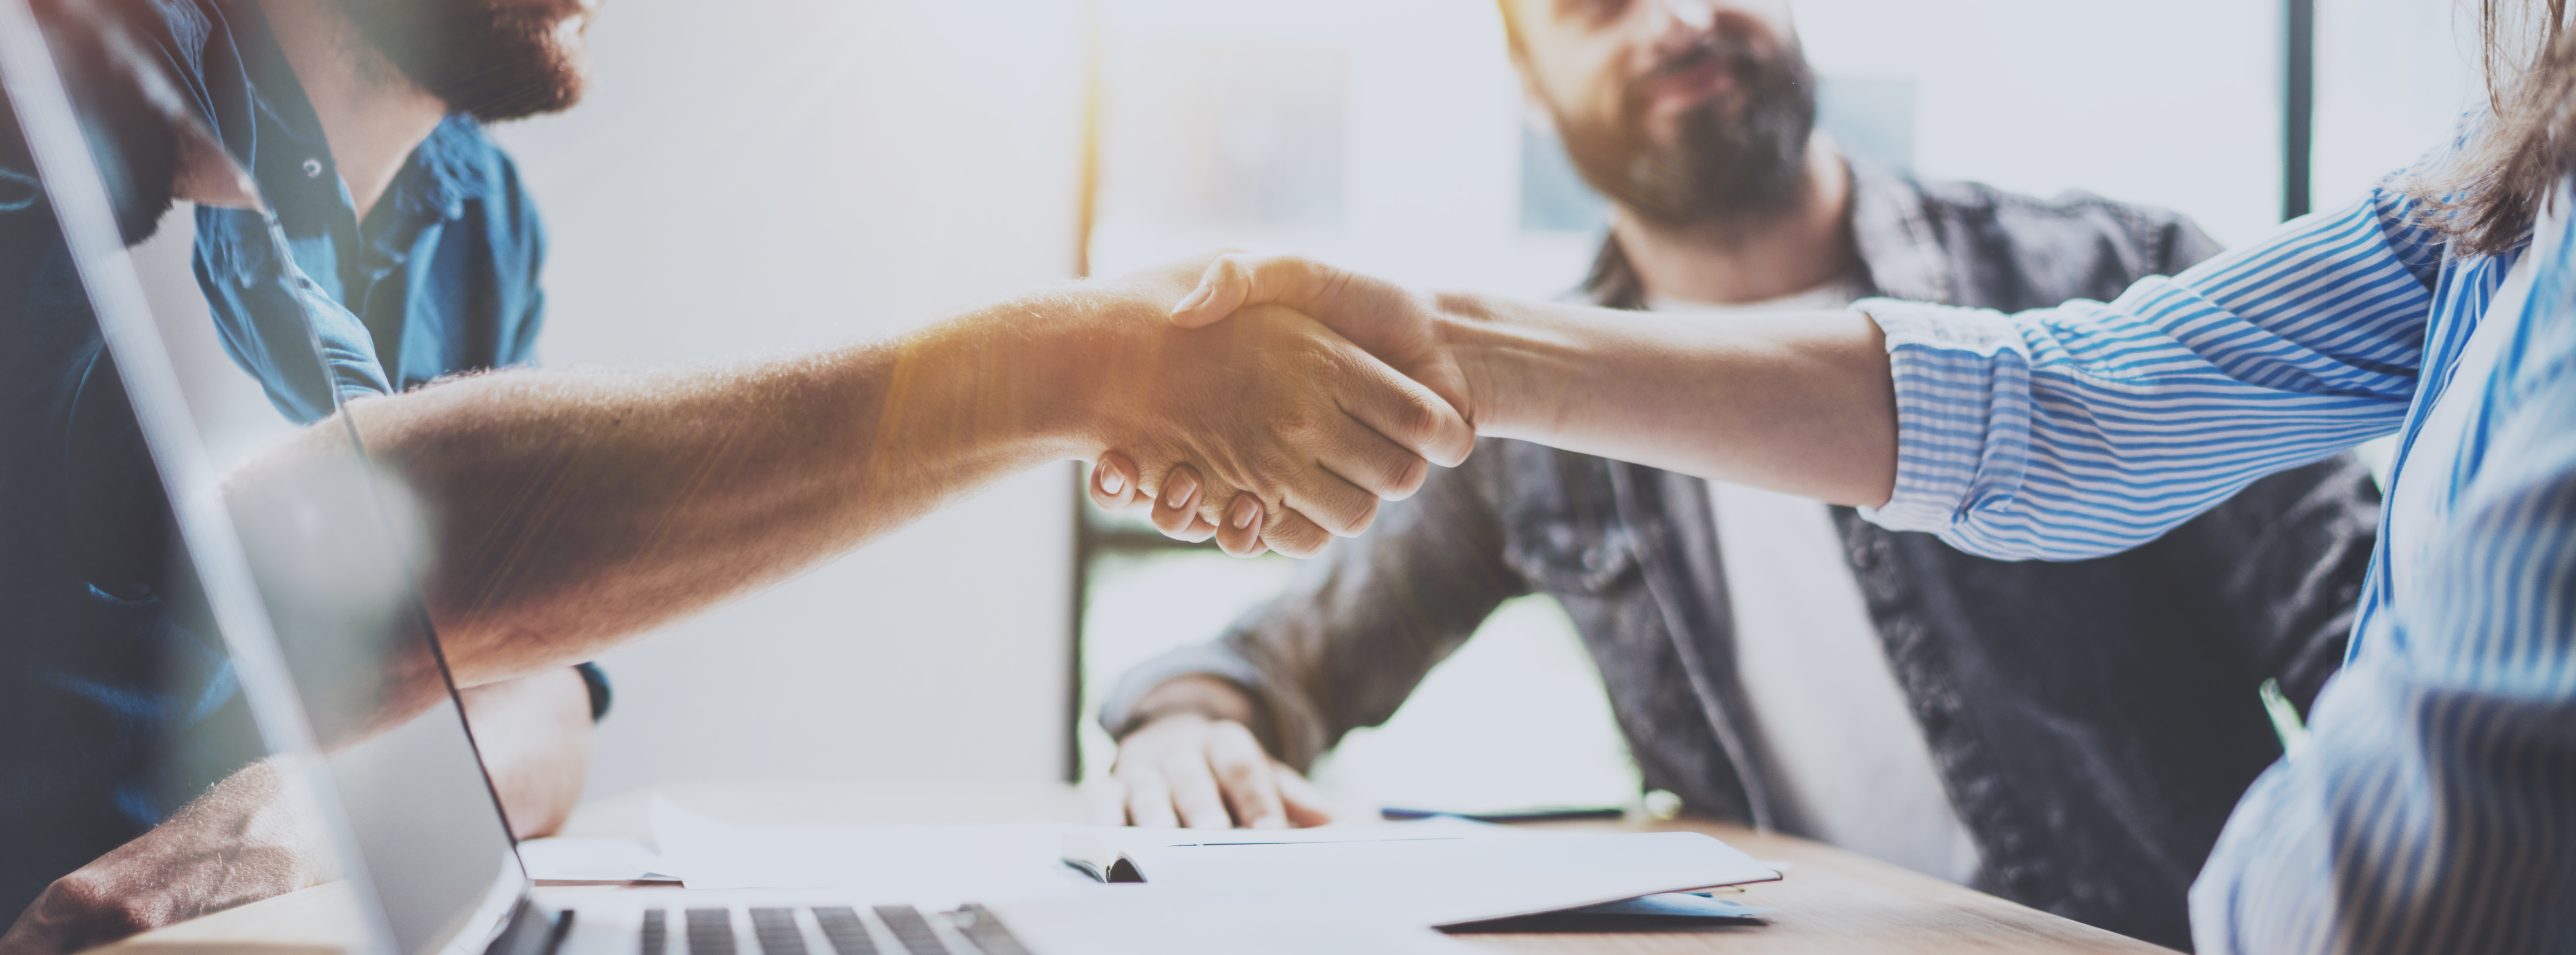 two coworkers handshaking after a successful deal after great meeting